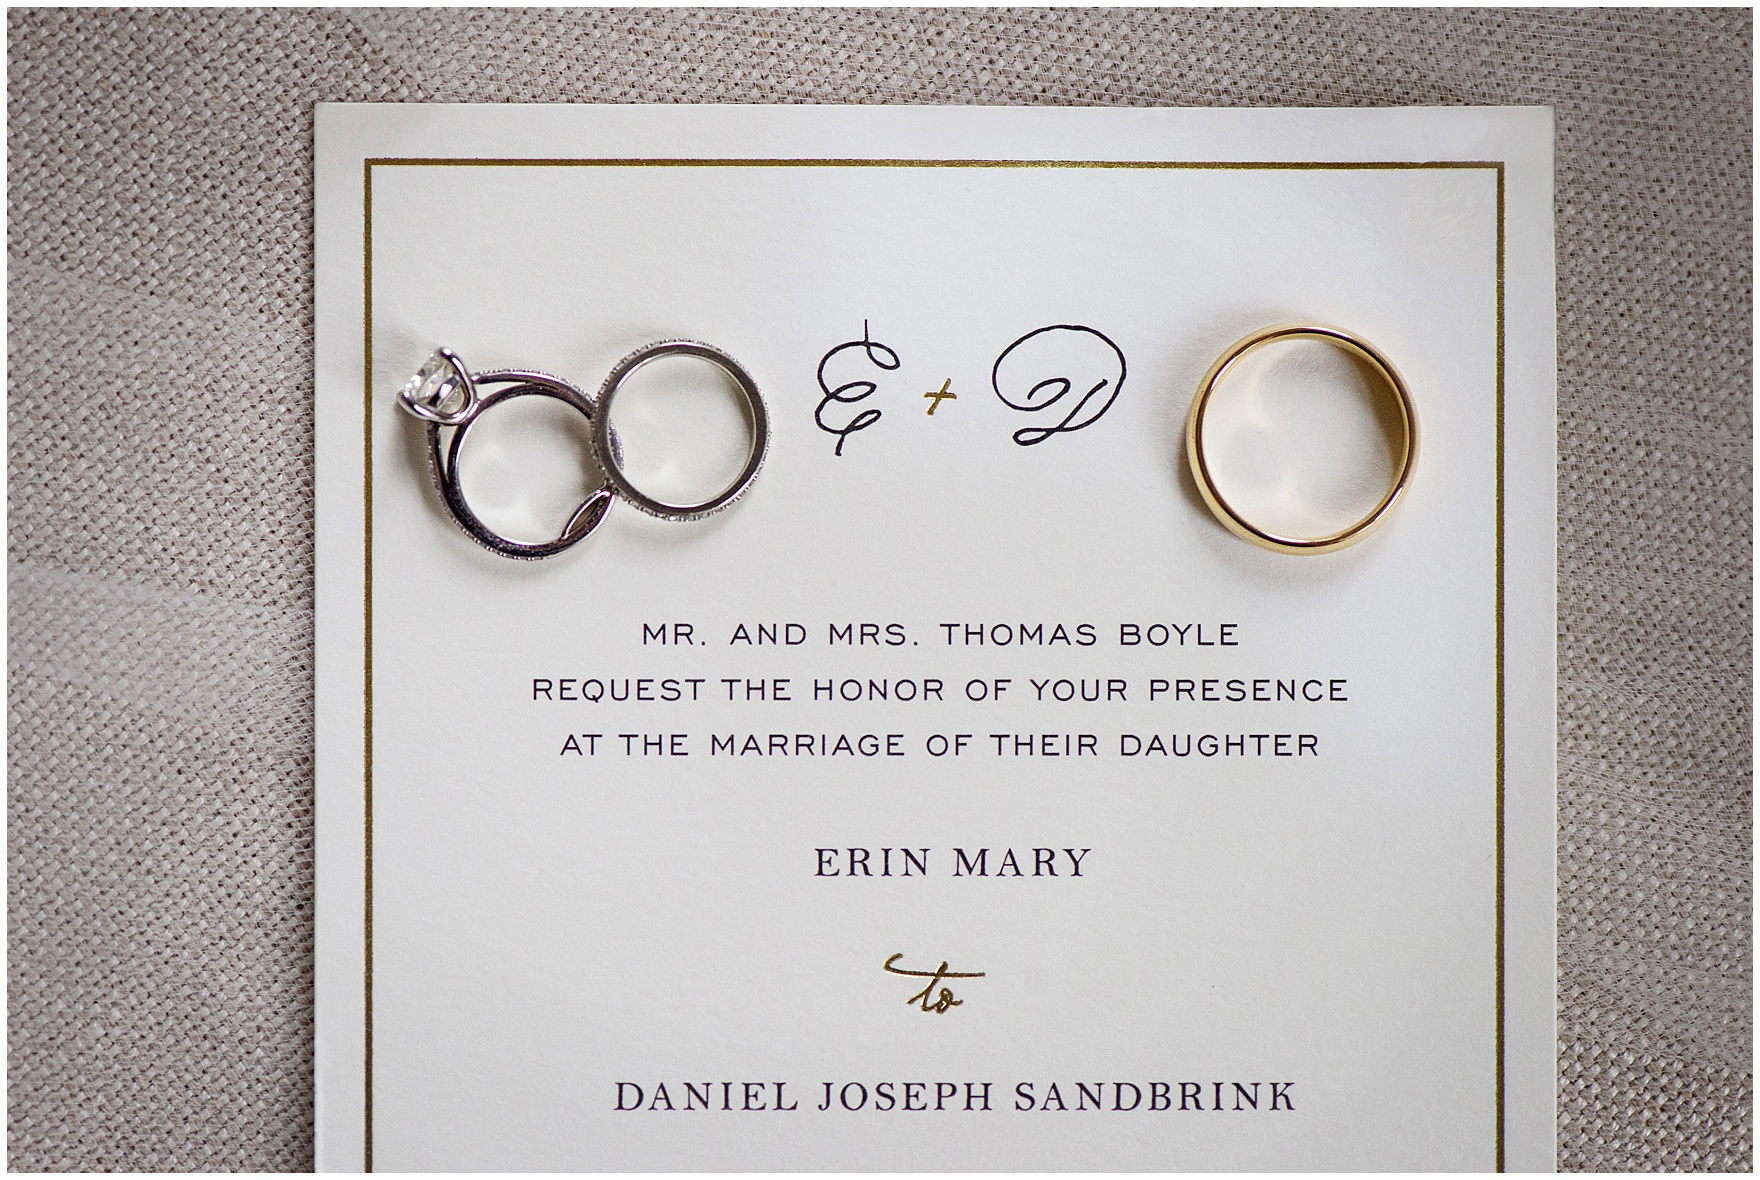 Close up of wedding rings on an invitation for a St. Clement Germania Place Chicago wedding.